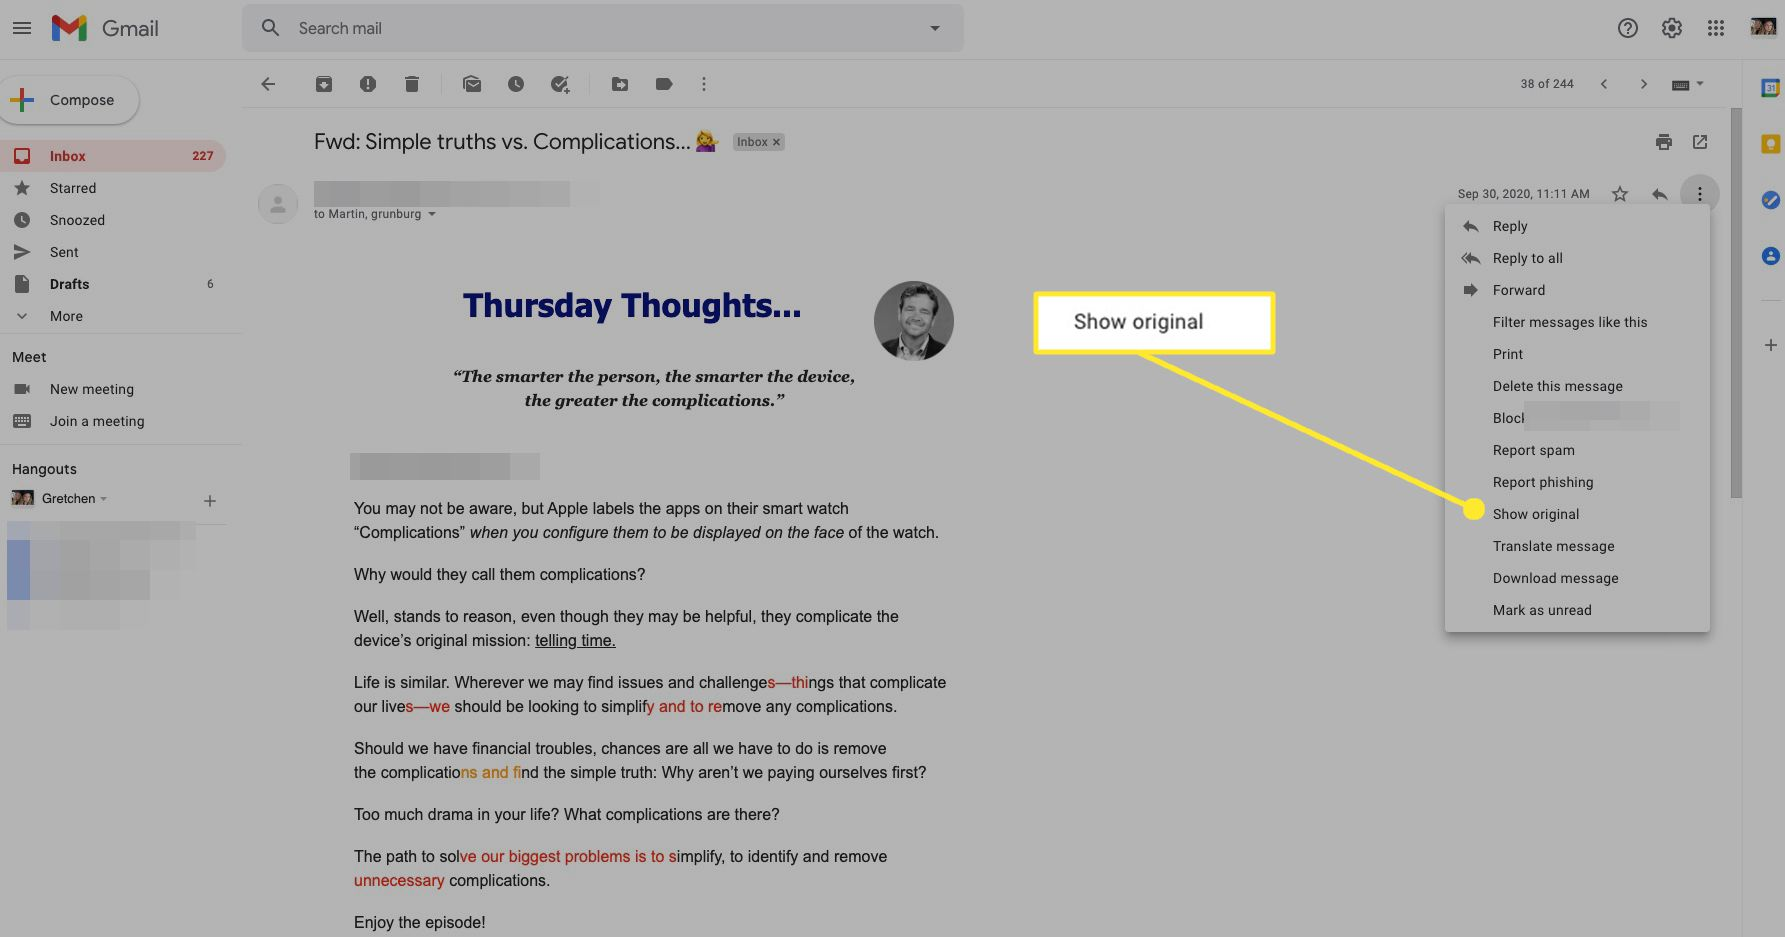 Gmail message options with